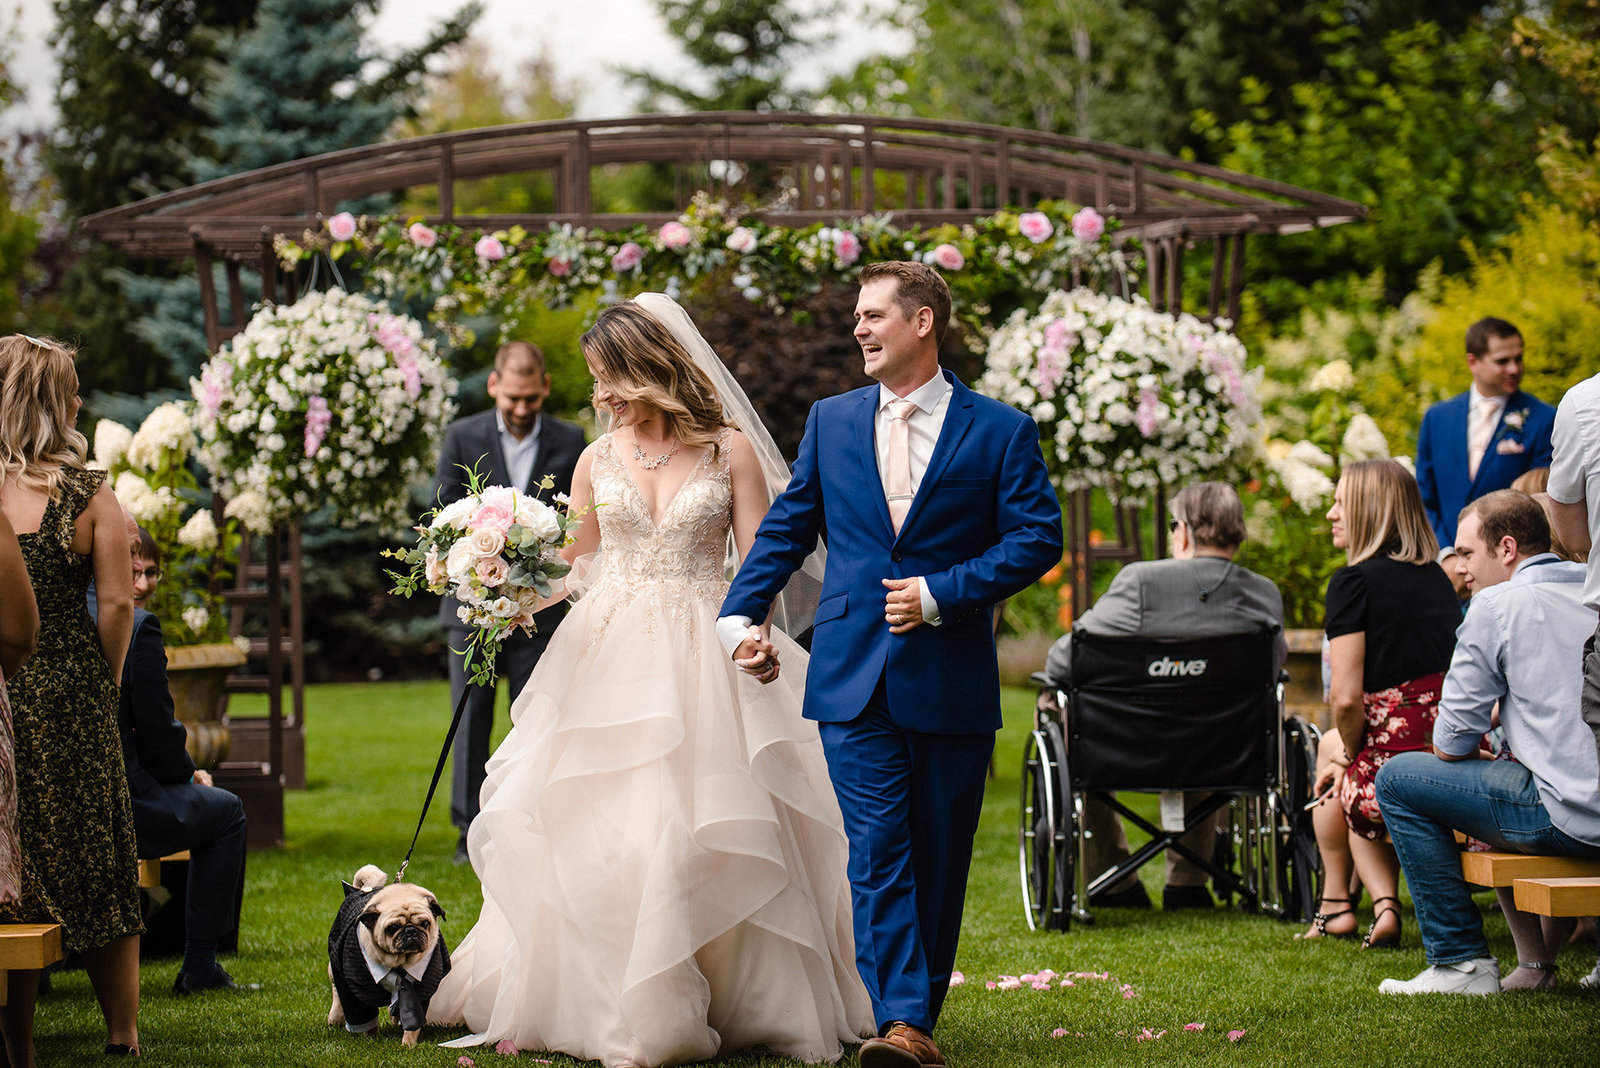 Greenland Garden Edmonton Wedding Photographer